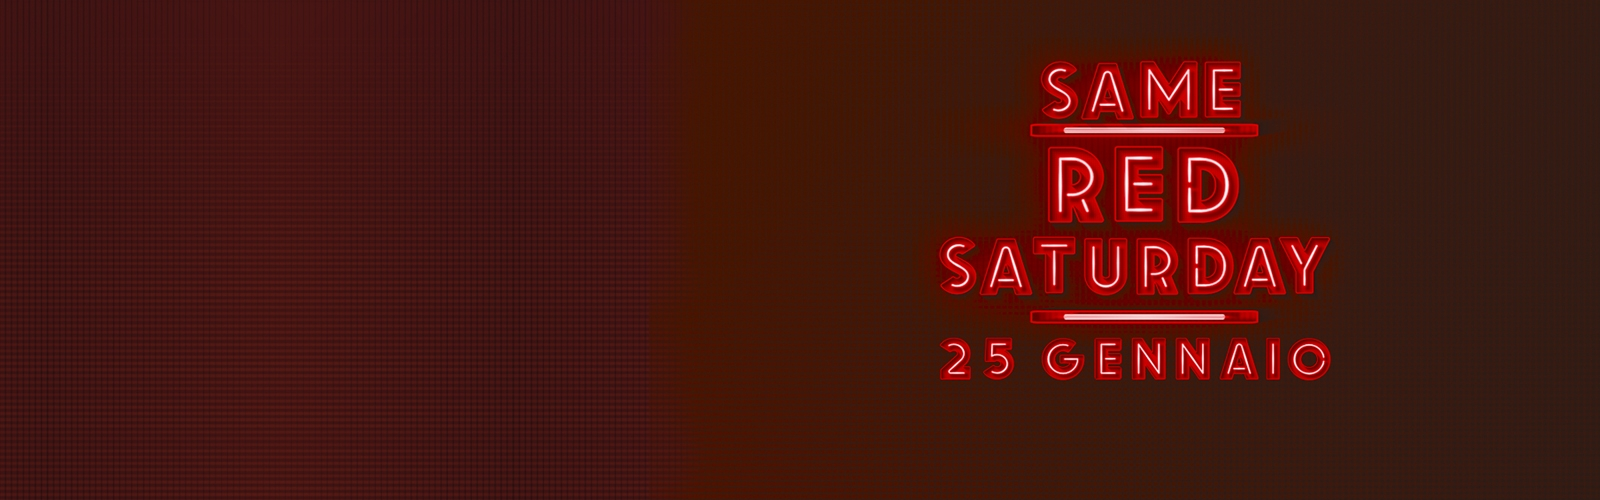 Red Saturday. 25 gennaio 2020.